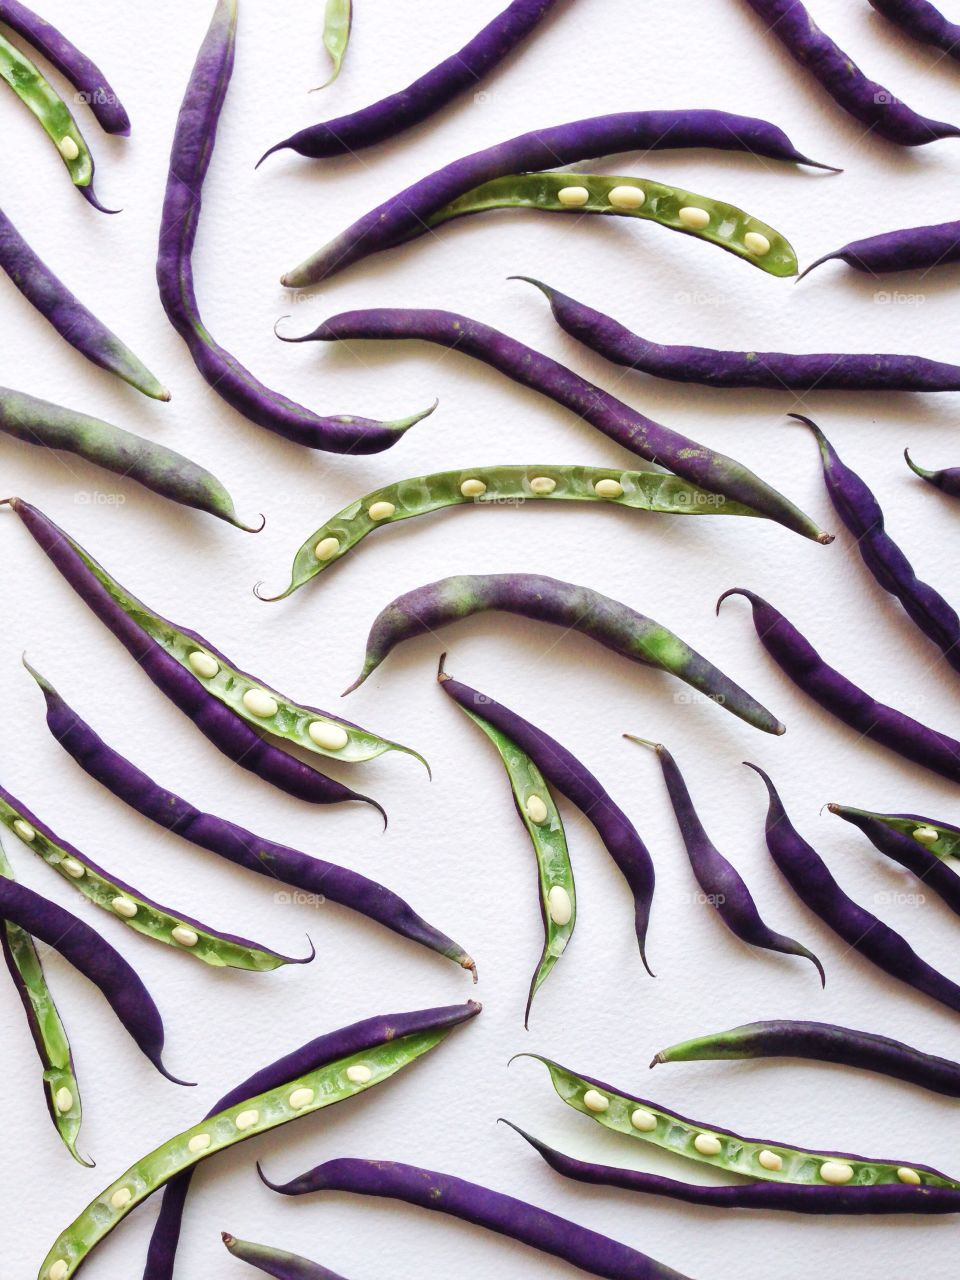 Purple hull peas collage on a white background